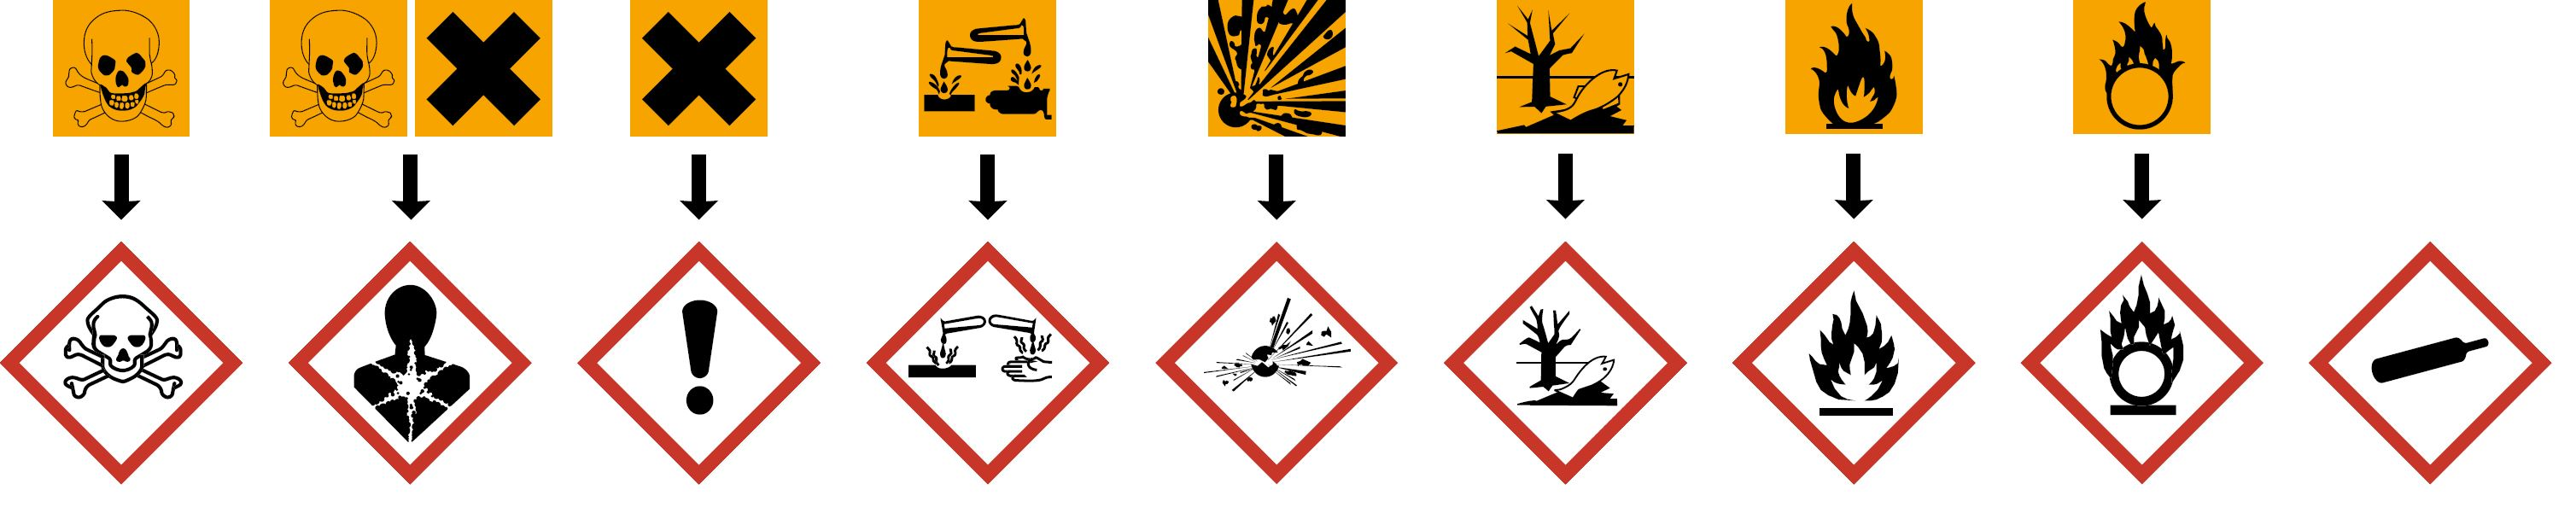 Warning signs indicating hazardous waste, such as corrosive, acute toxicity, compressed gas